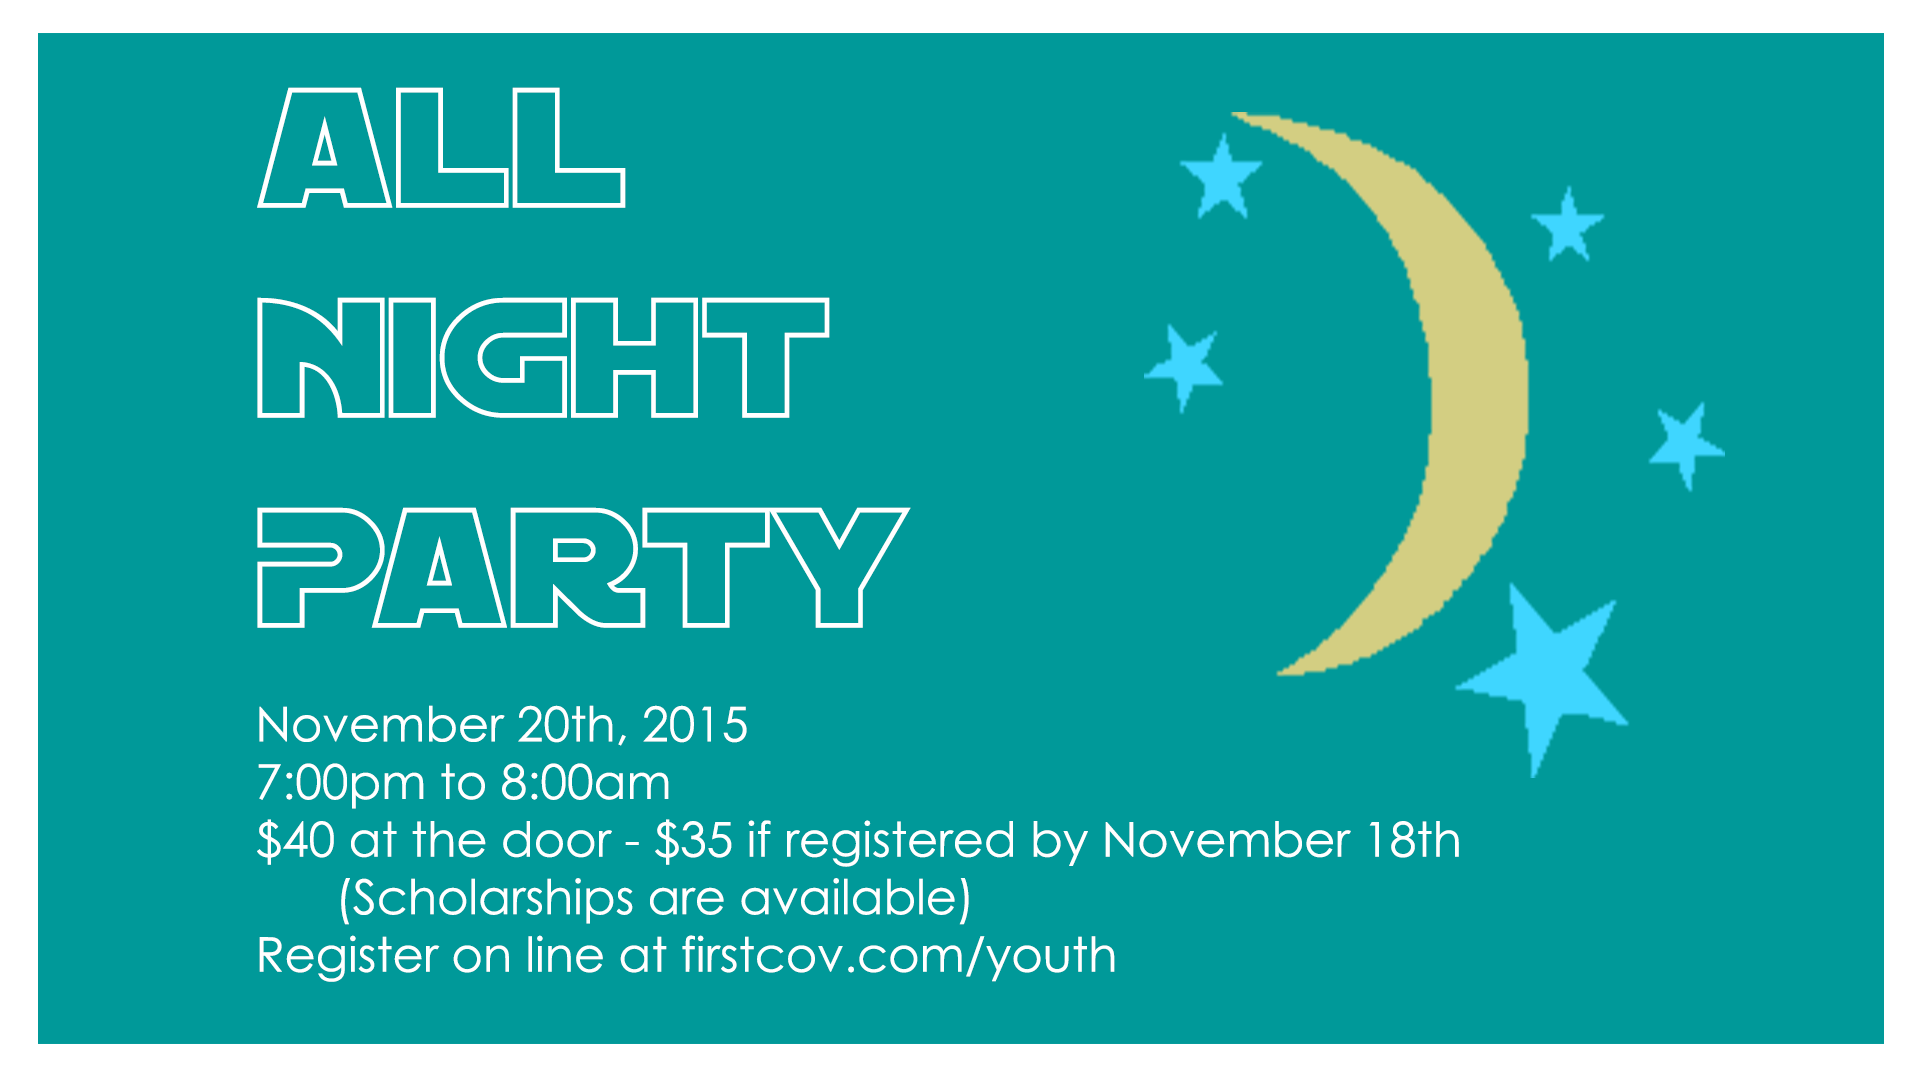 All Night Party Promo 2015.png